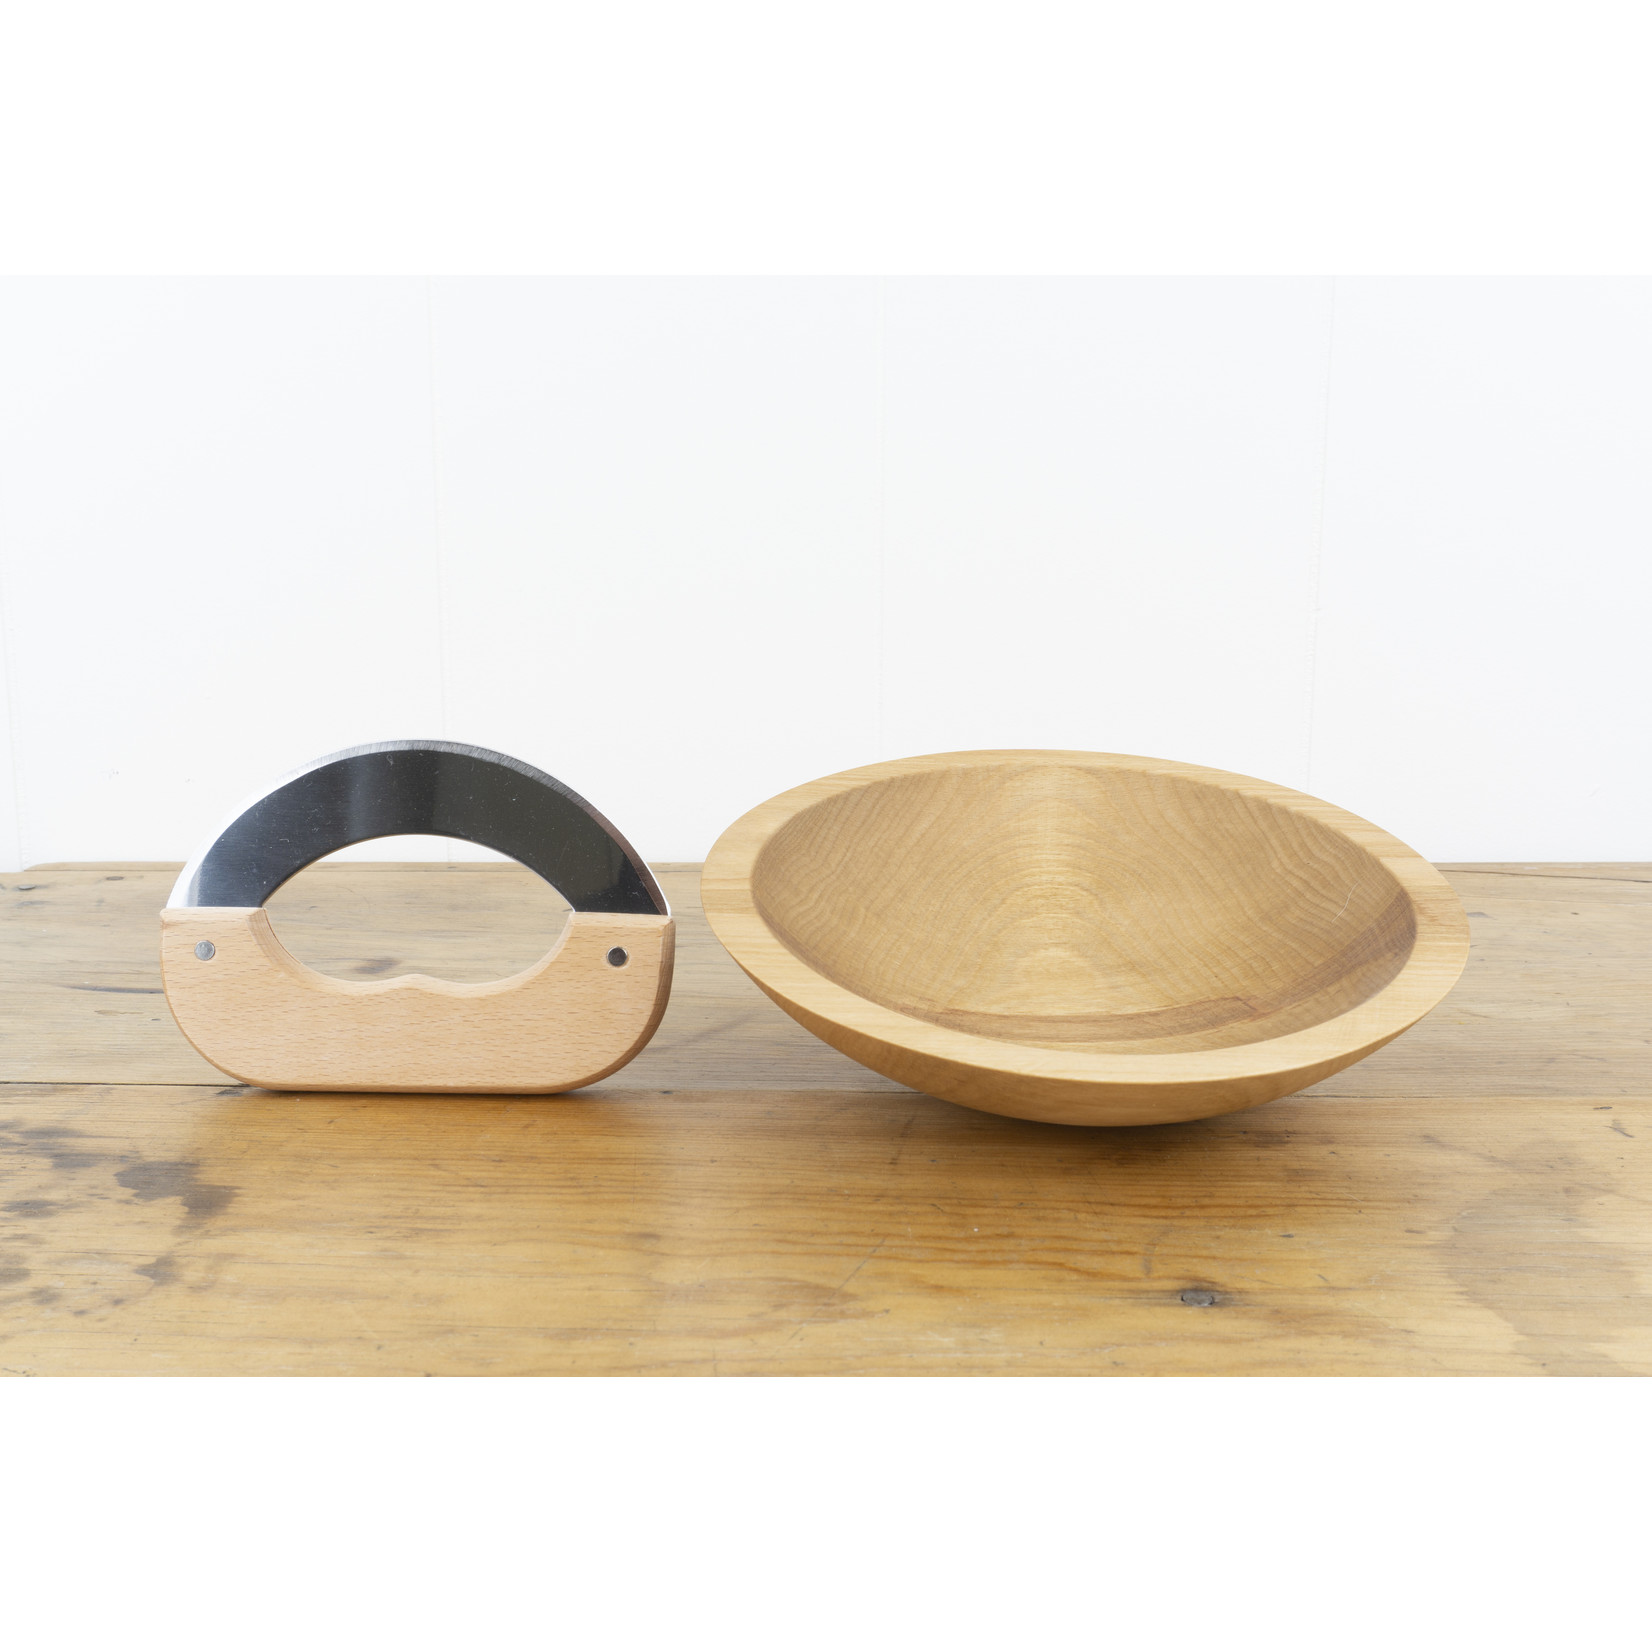 Wooden Herb Chopping Bowl with knife